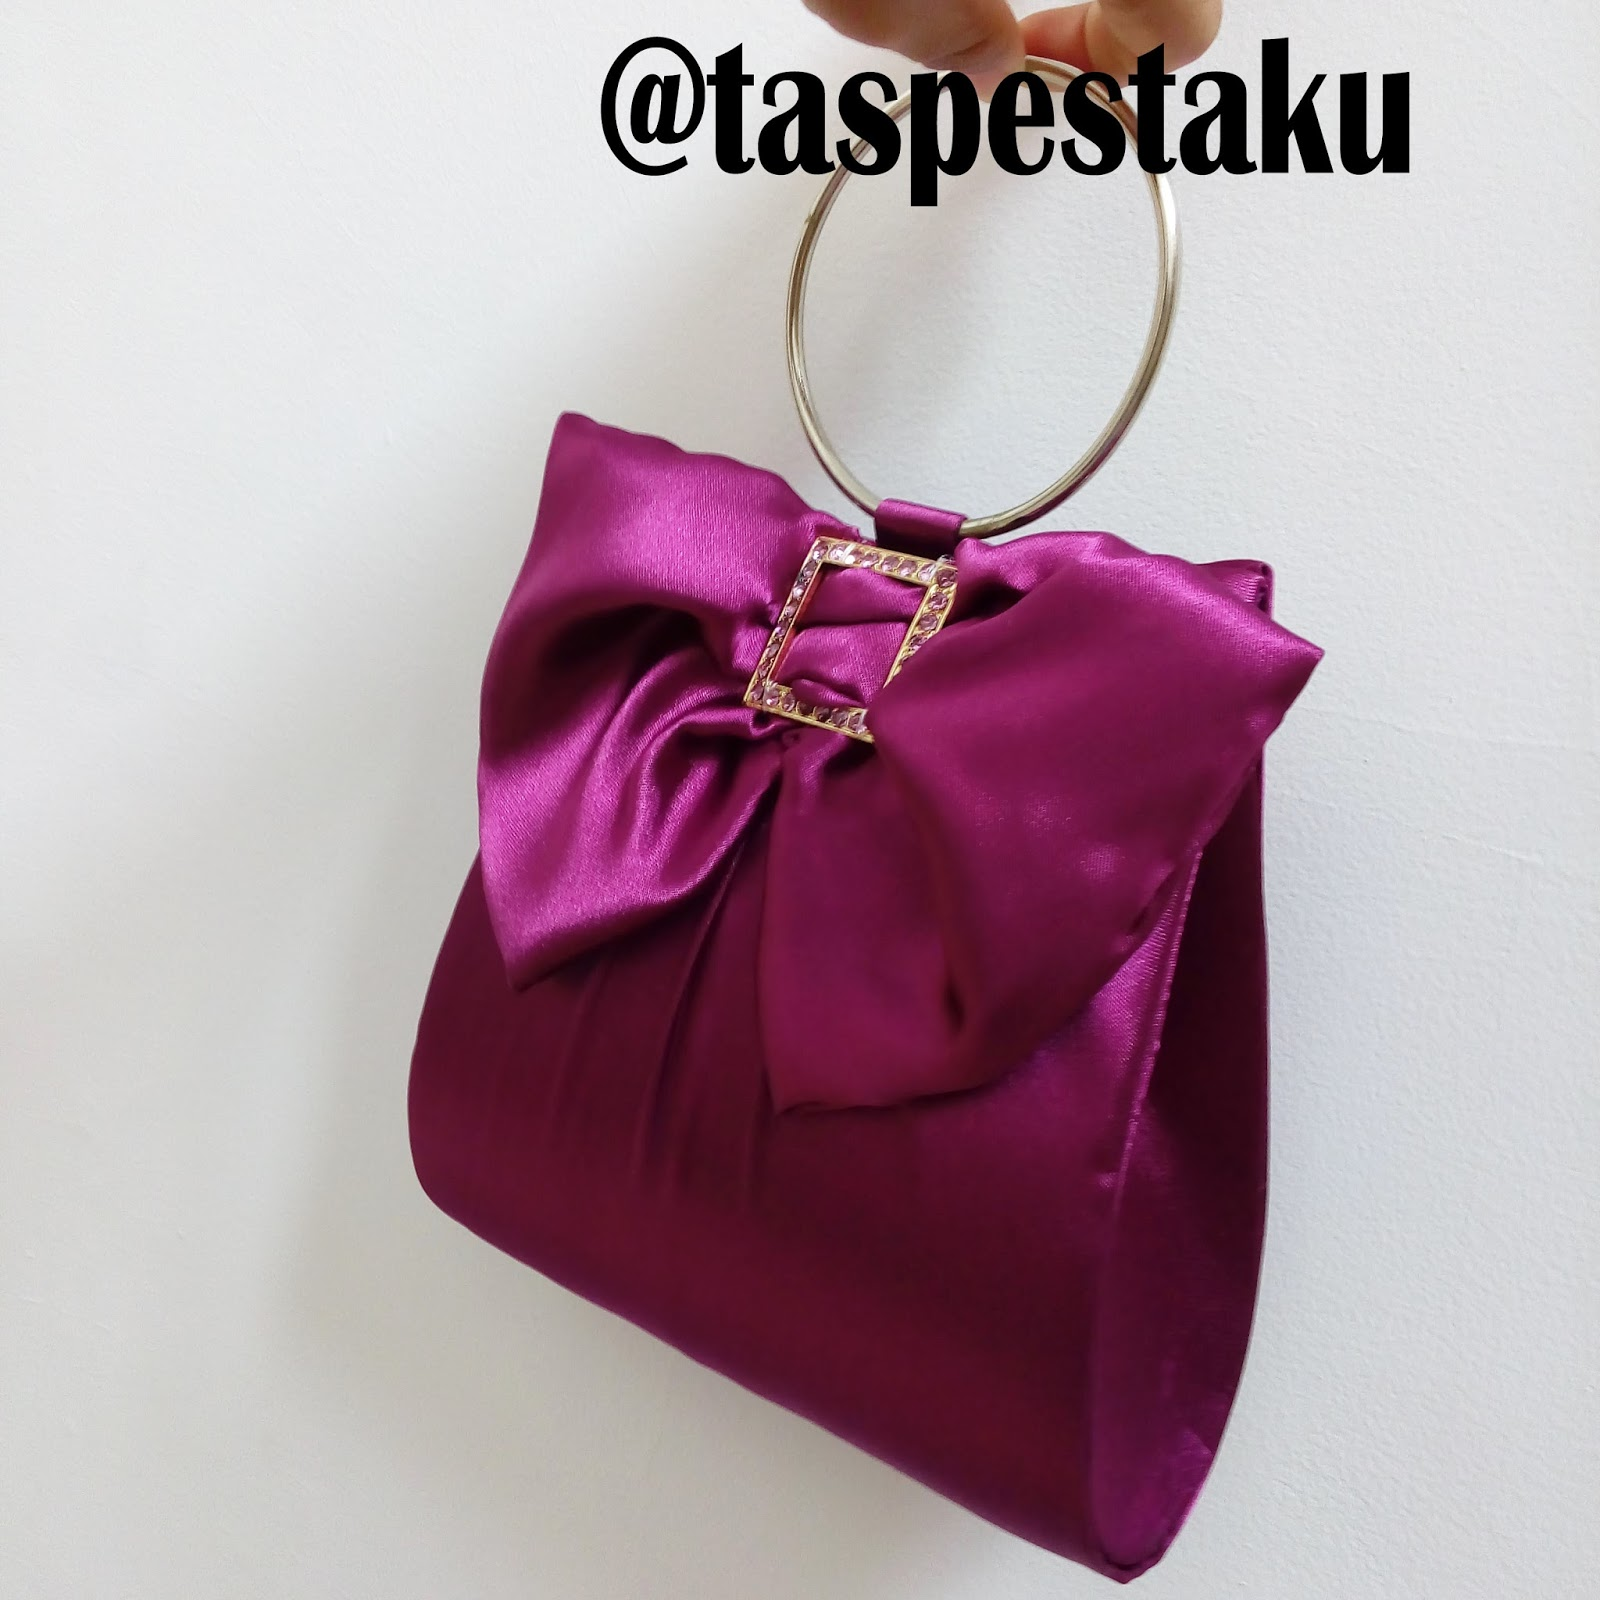 Tas Pesta - Clutch Bag @taspestaku: Handmade Tas Pesta ...